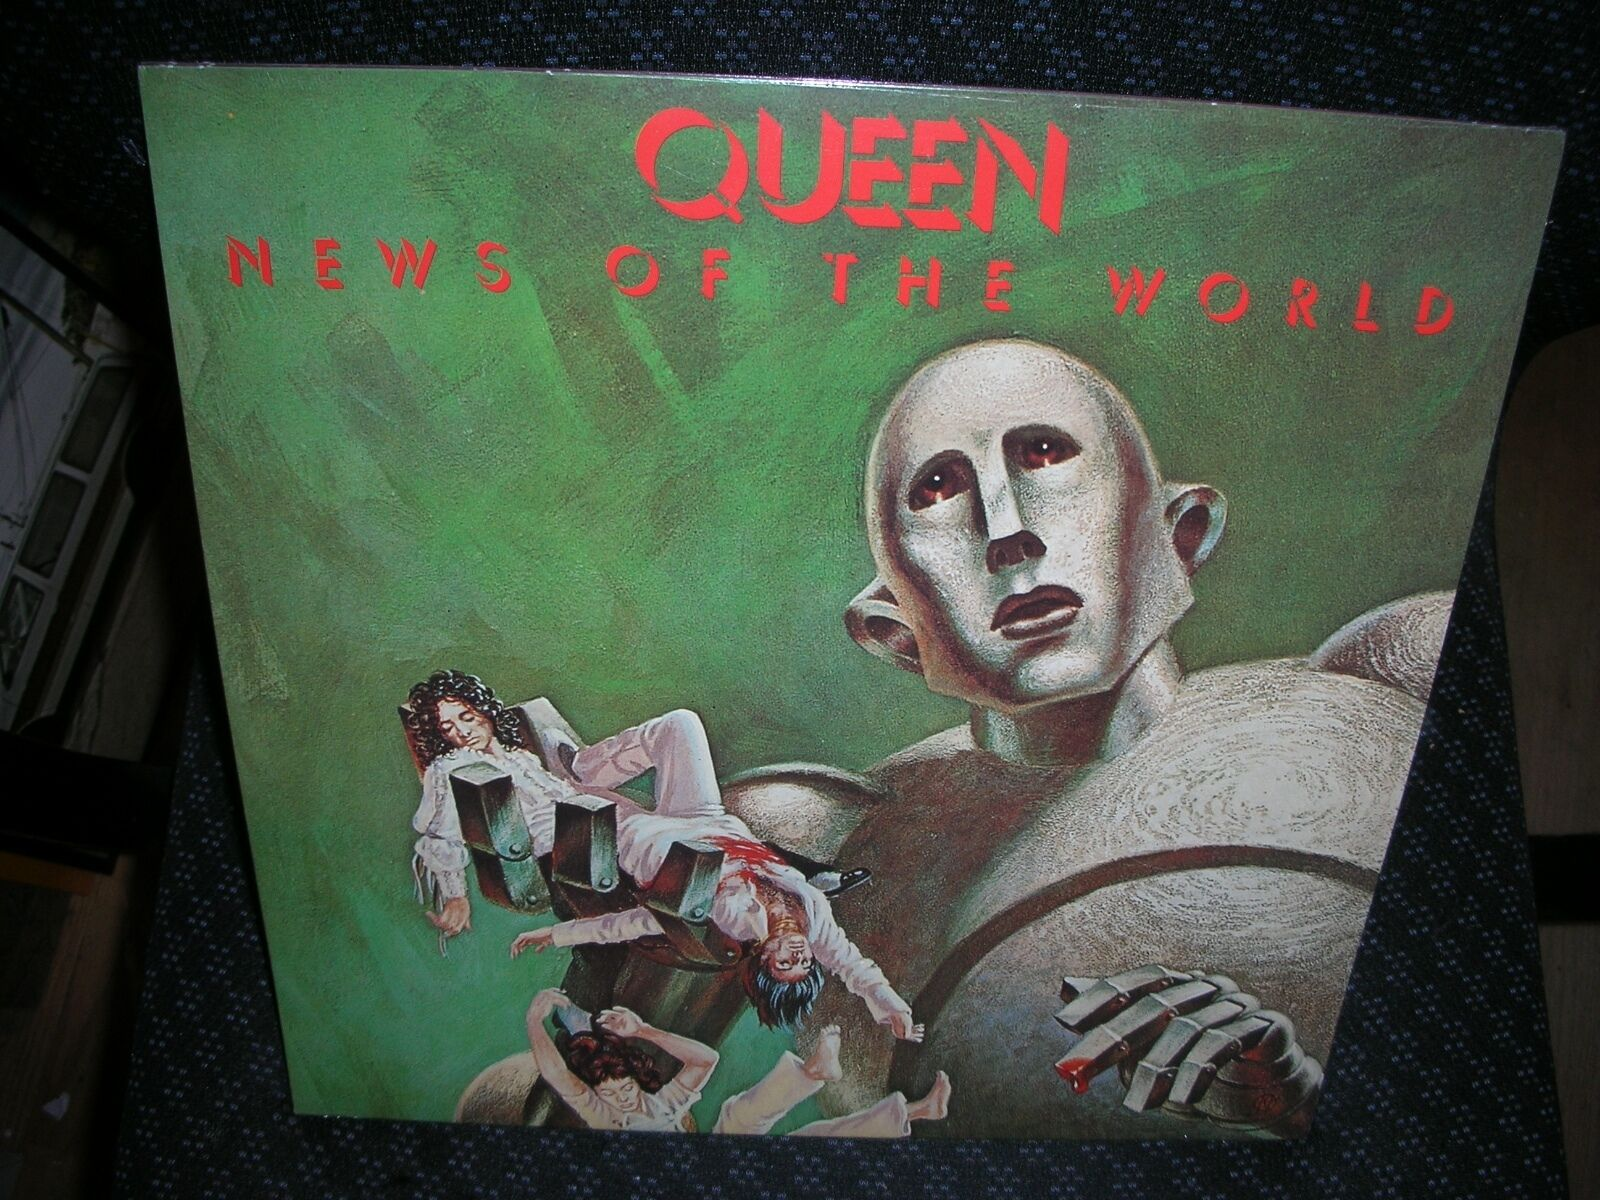 Купить QUEEN **News of the World **BRAND NEW 180 GRAM RECORD LP VINYL